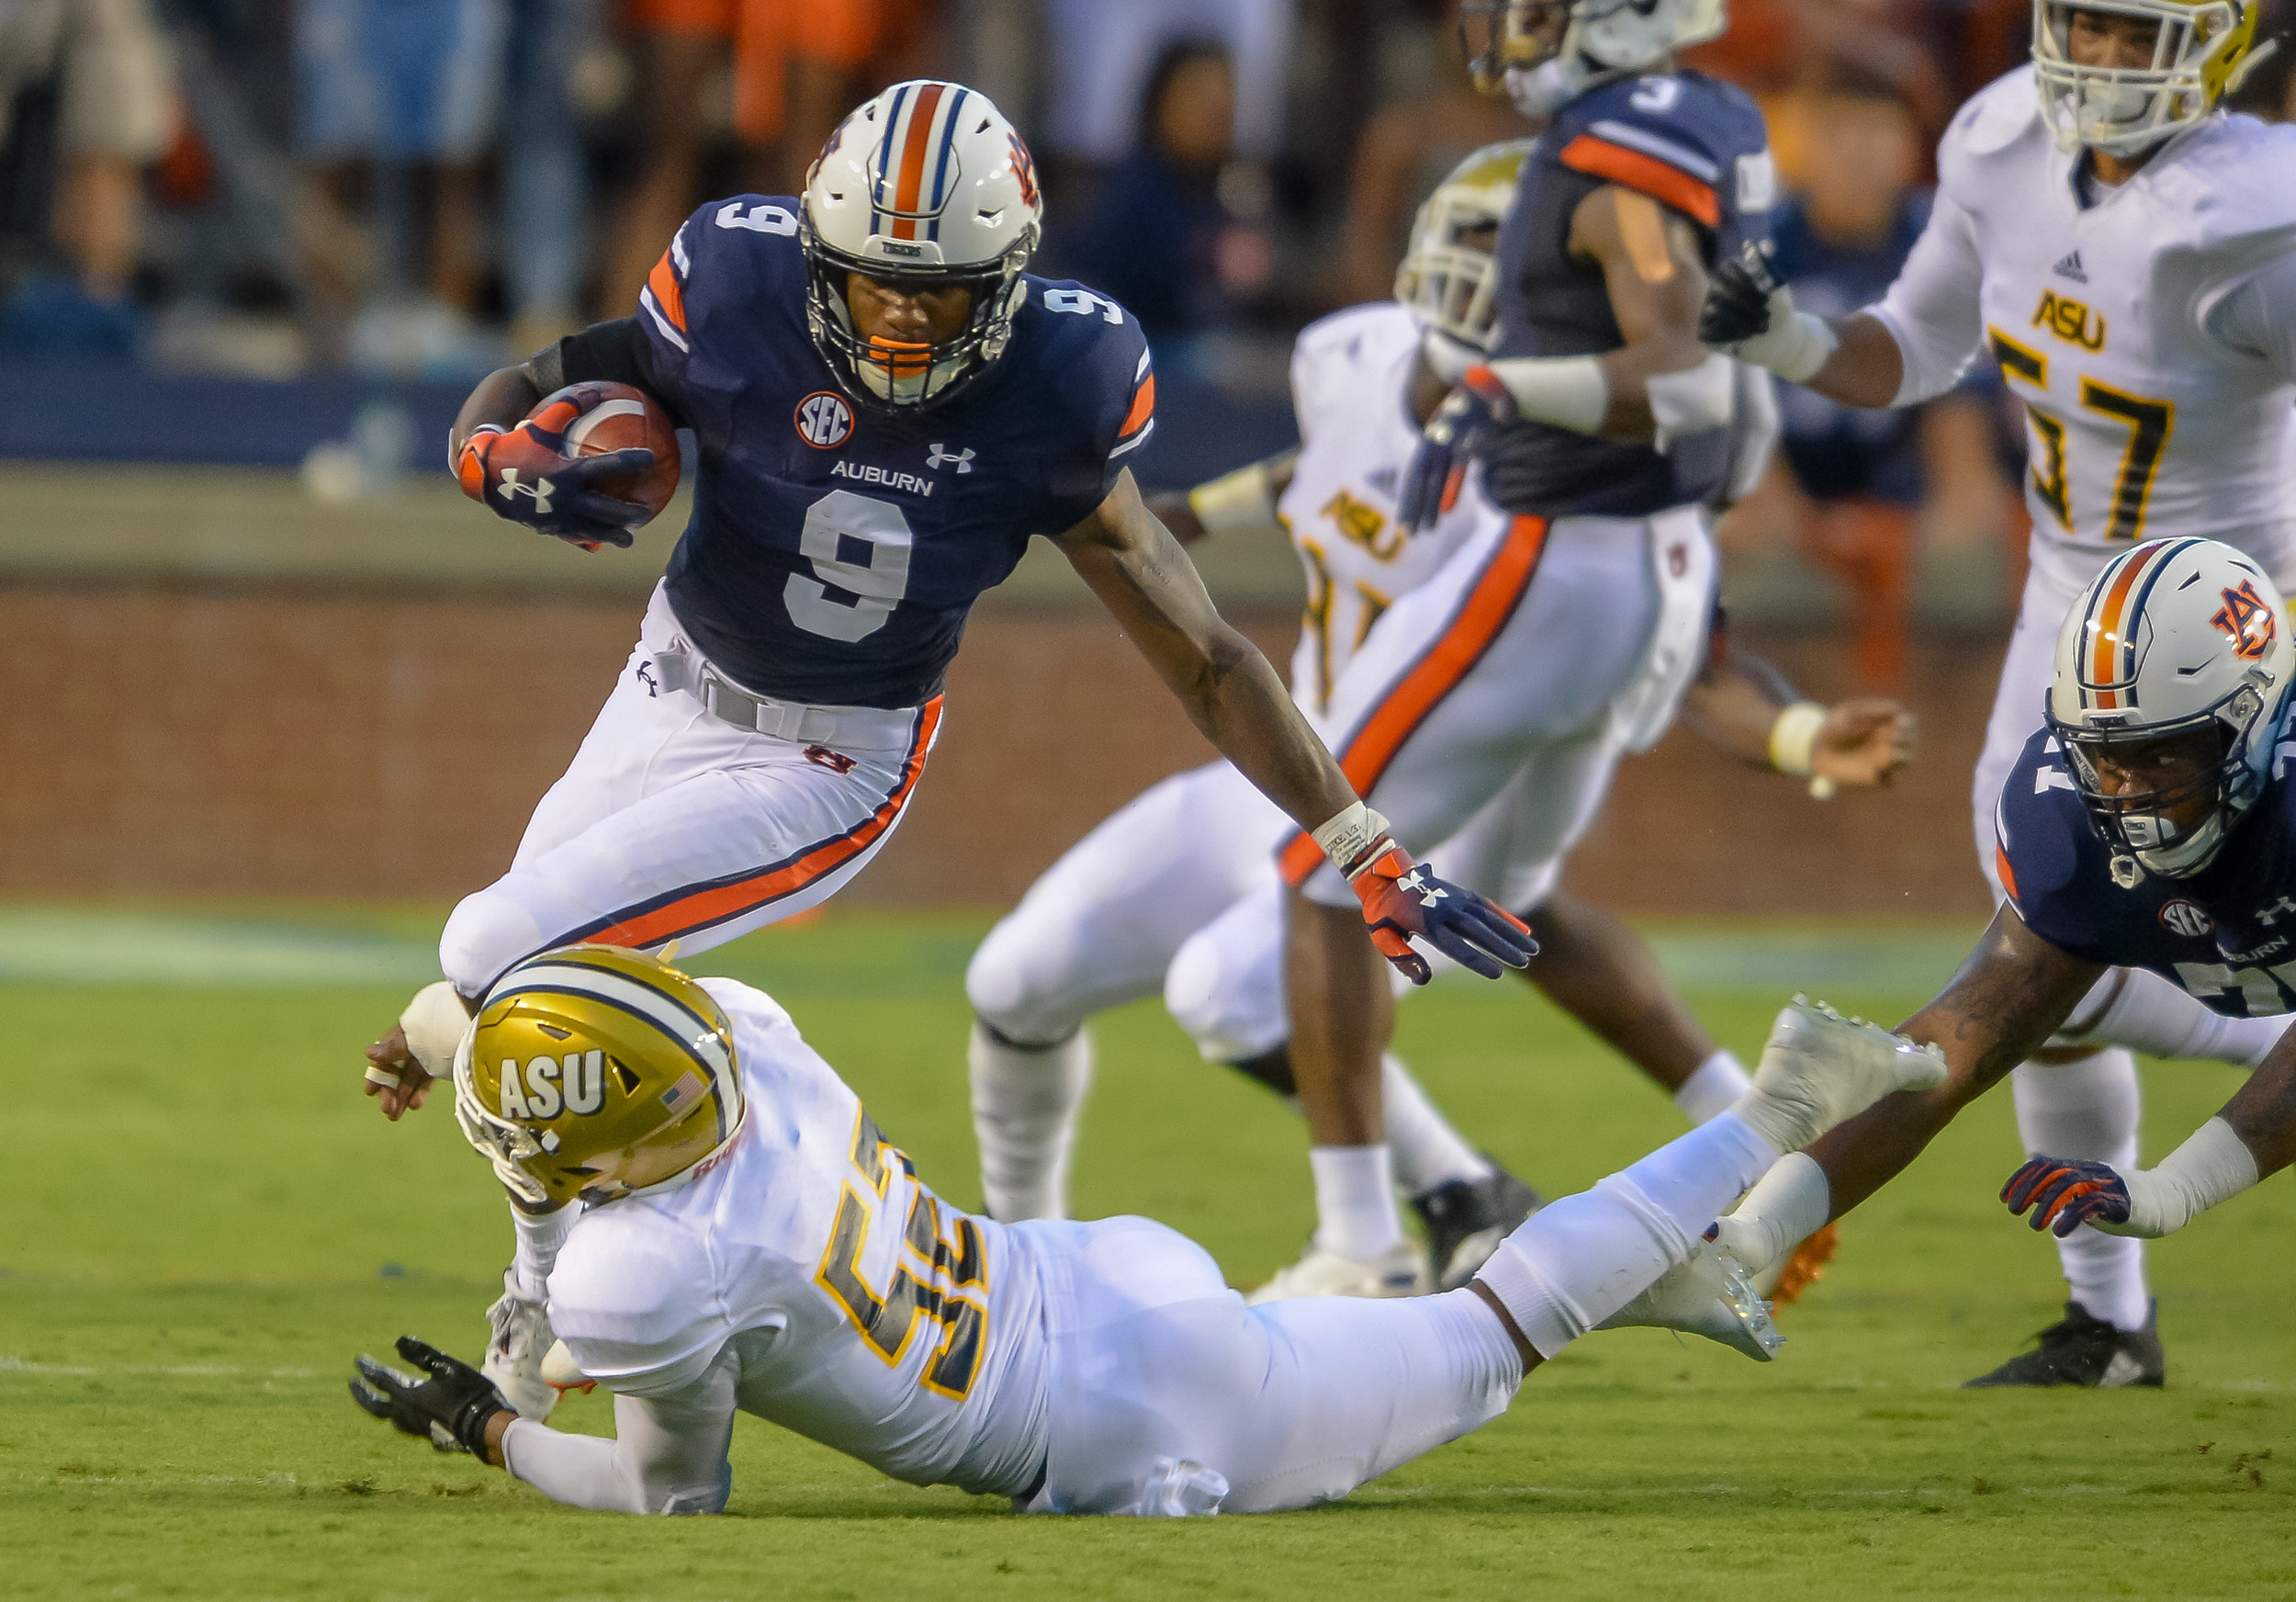 Auburn Tigers running back Kam Martin (9) is tackled by Alabama State Hornets linebacker Malik Bridgers (52) during the first half of Saturday's game, at Jordan Hare Stadium in Auburn, AL. (Contributed by Jeff Johnsey)